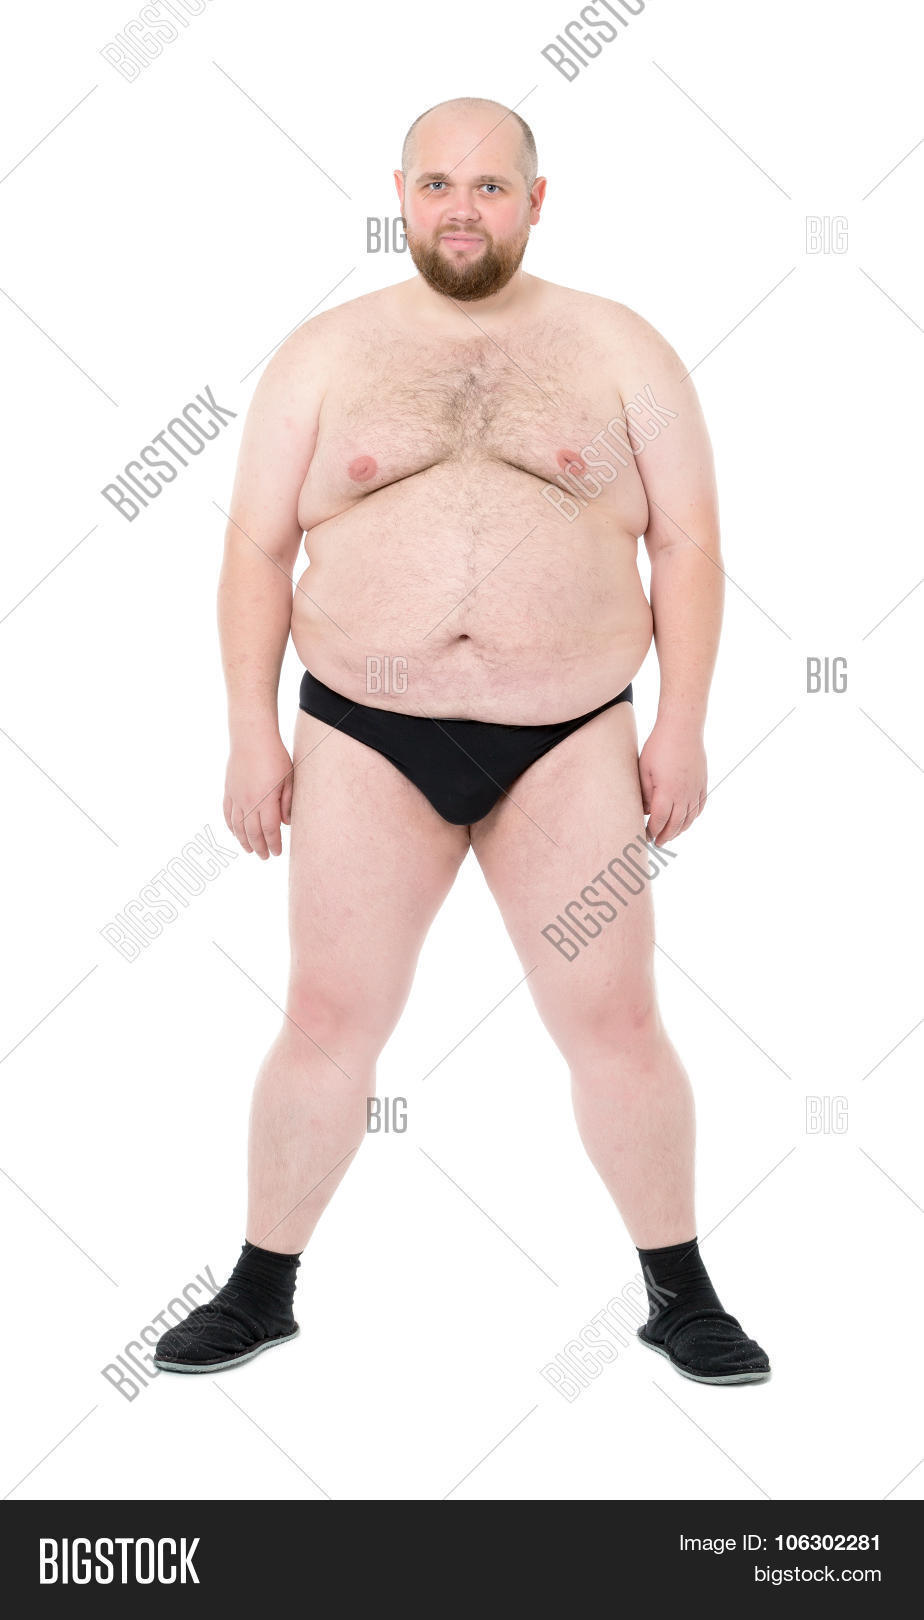 fat-person-naked